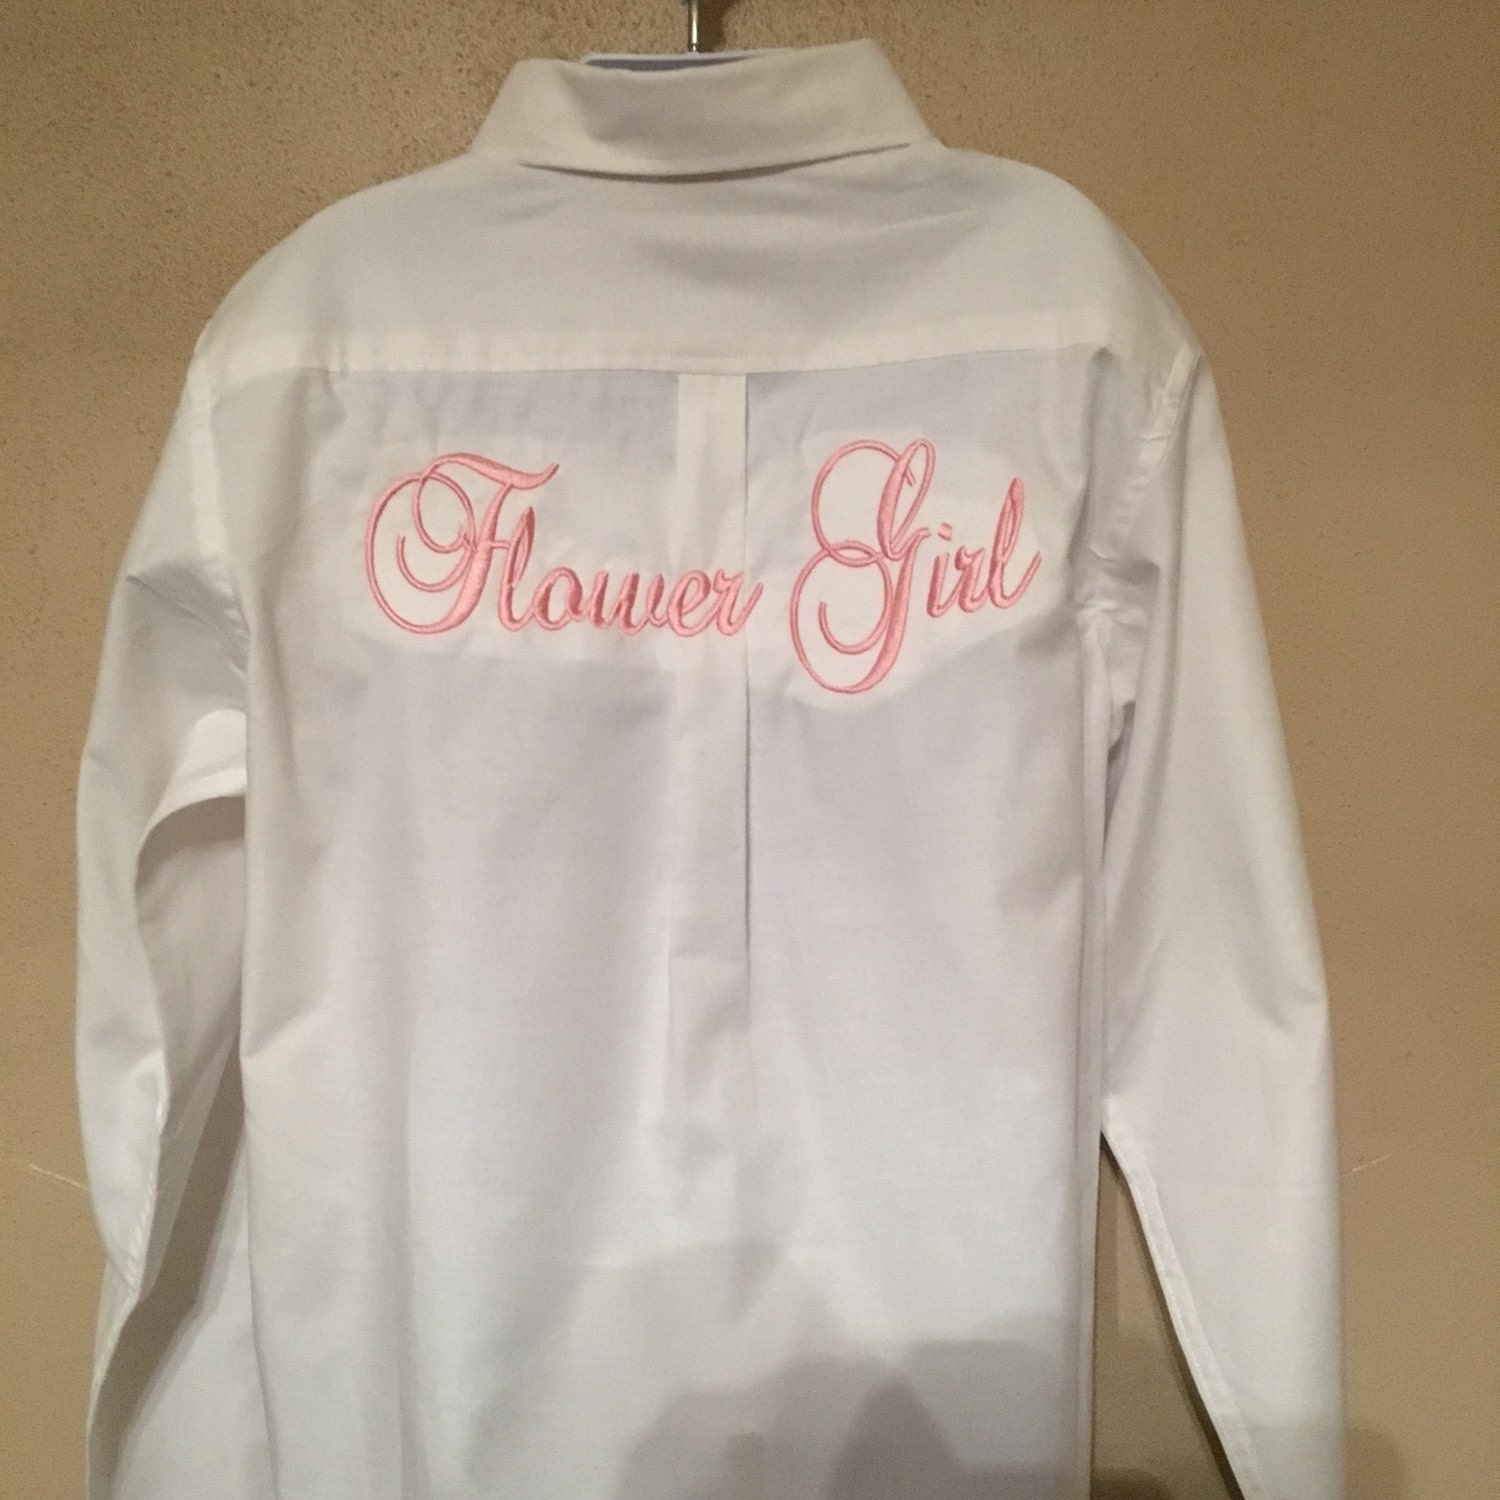 Flower girl monogram shirts button down oversized style dress for Initials on dress shirts